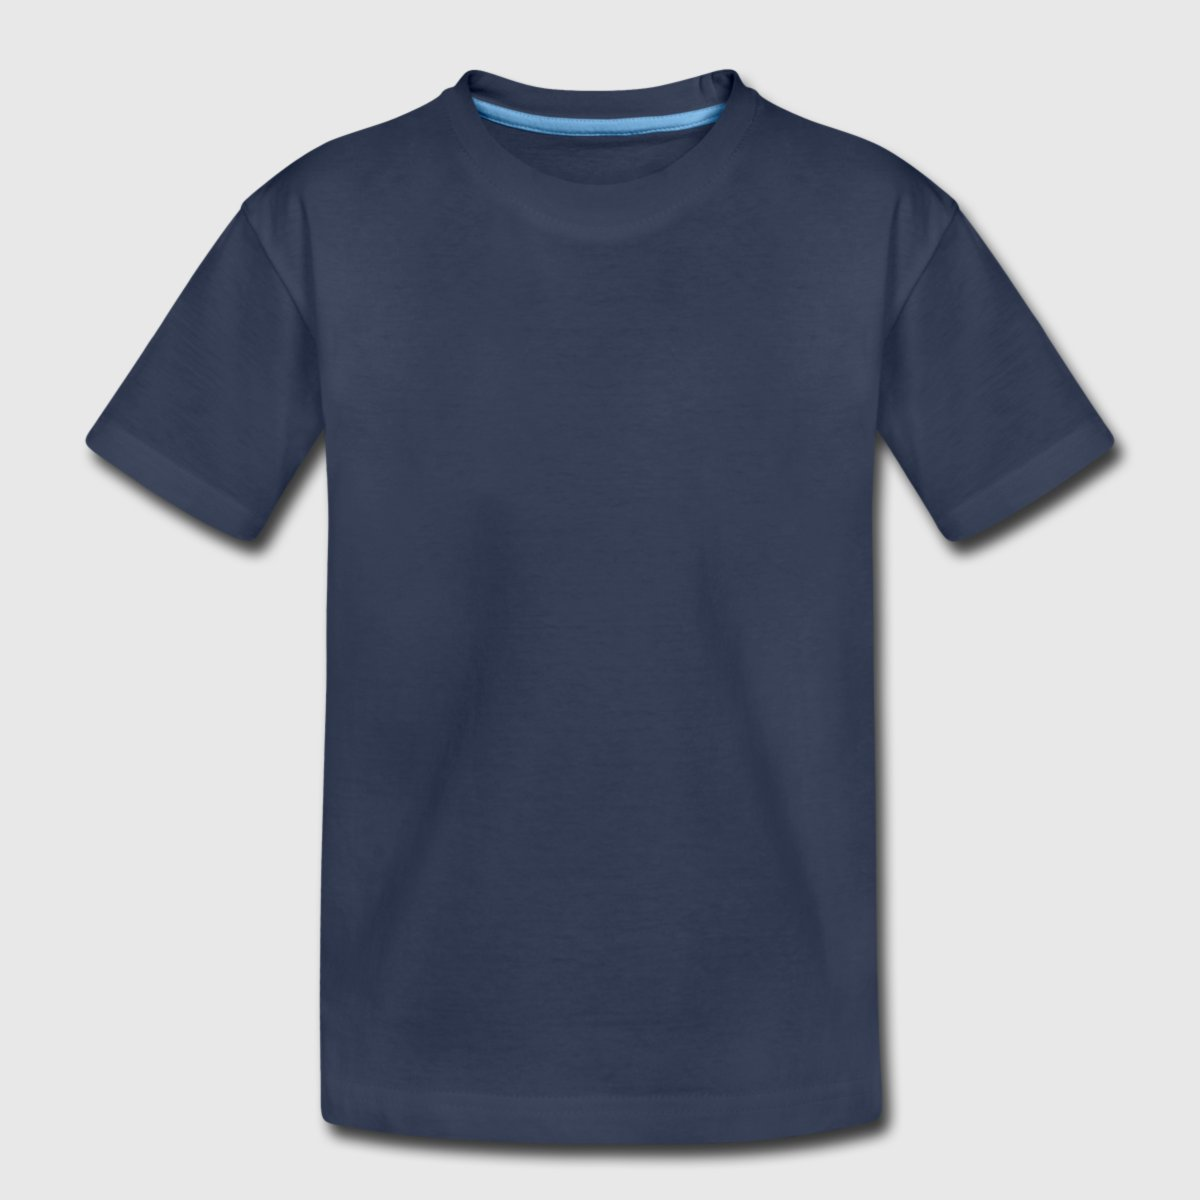 Toddler Premium T-Shirt - Front